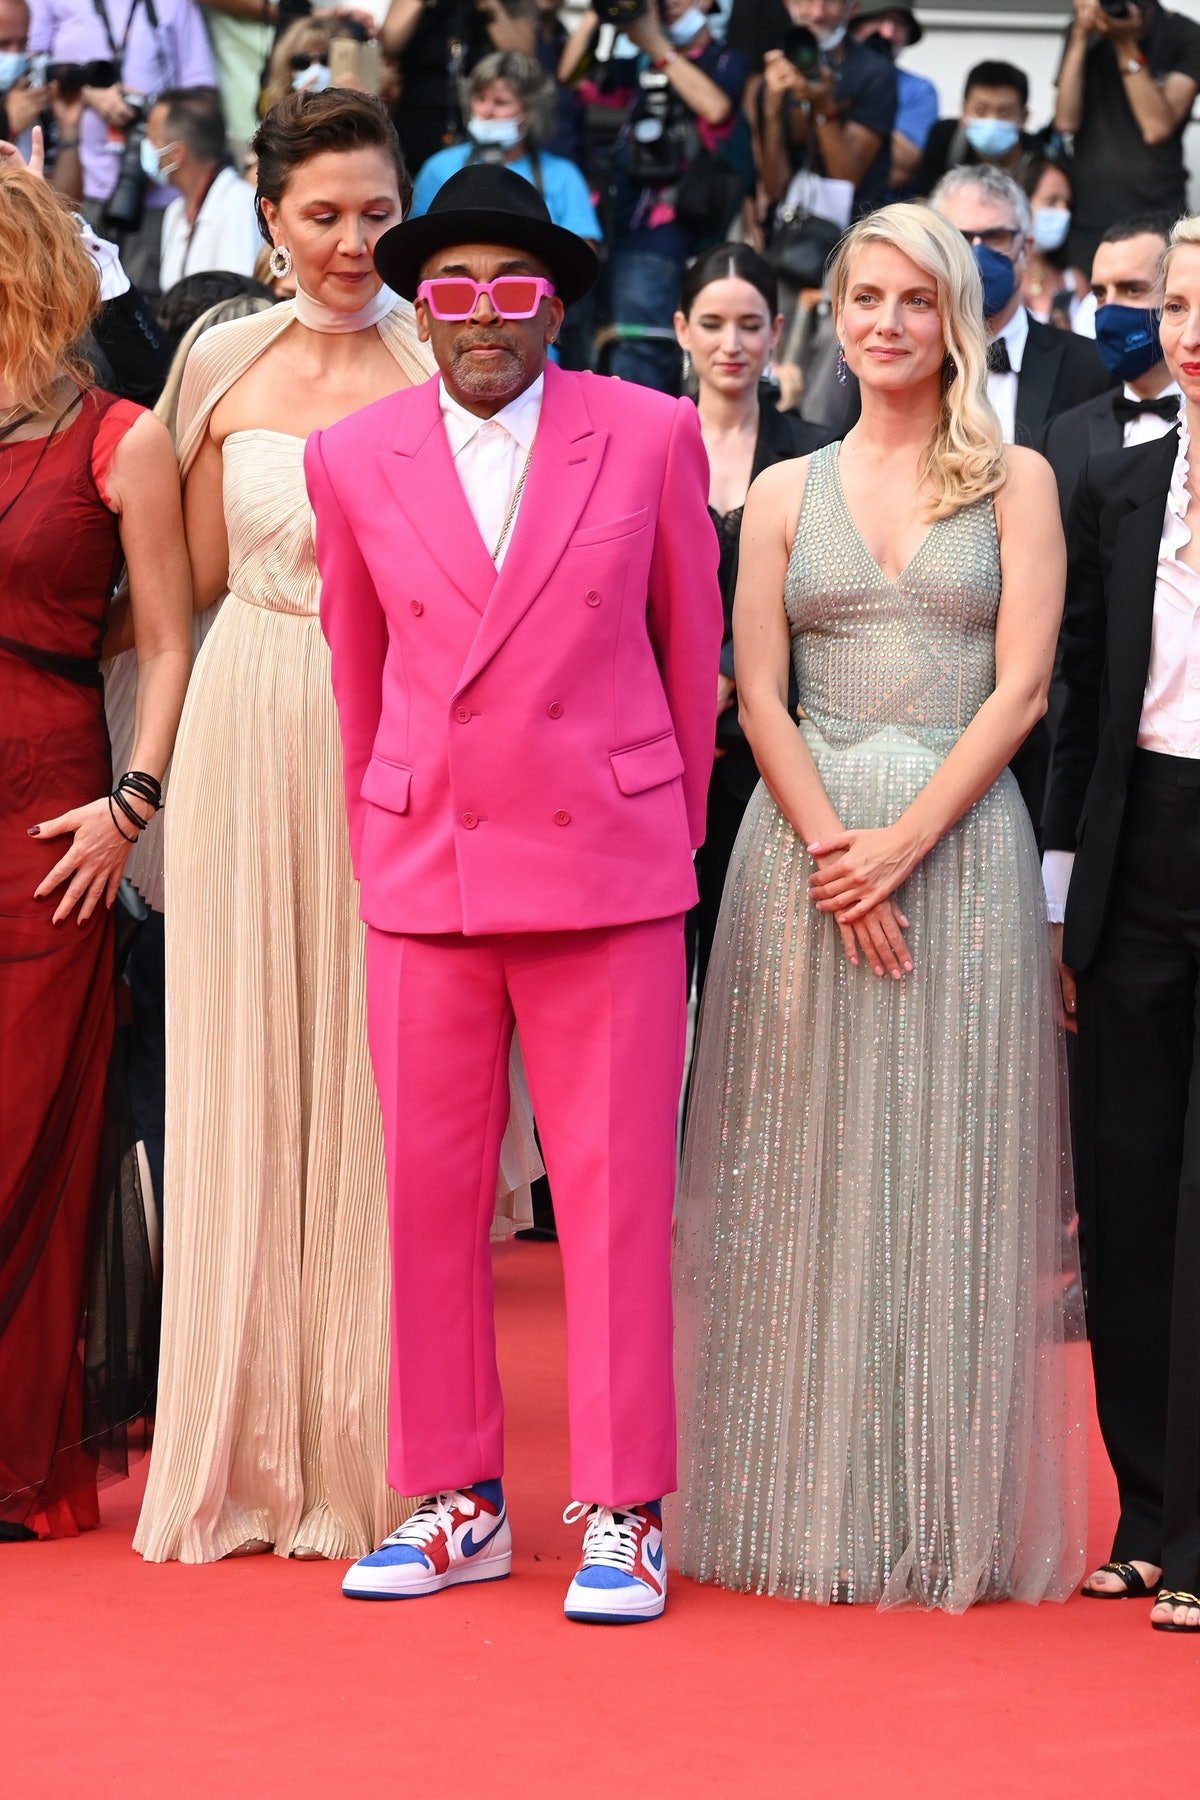 """CANNES, FRANCE - JULY 06: Jury Member Maggie Gyllenhaal, Jury president and Director Spike Lee and Melanie Laurent attend the """"Annette"""" screening and opening ceremony during the 74th annual Cannes Film Festival on July 06, 2021 in Cannes, France. (Photo by Daniele Venturelli/WireImage)"""